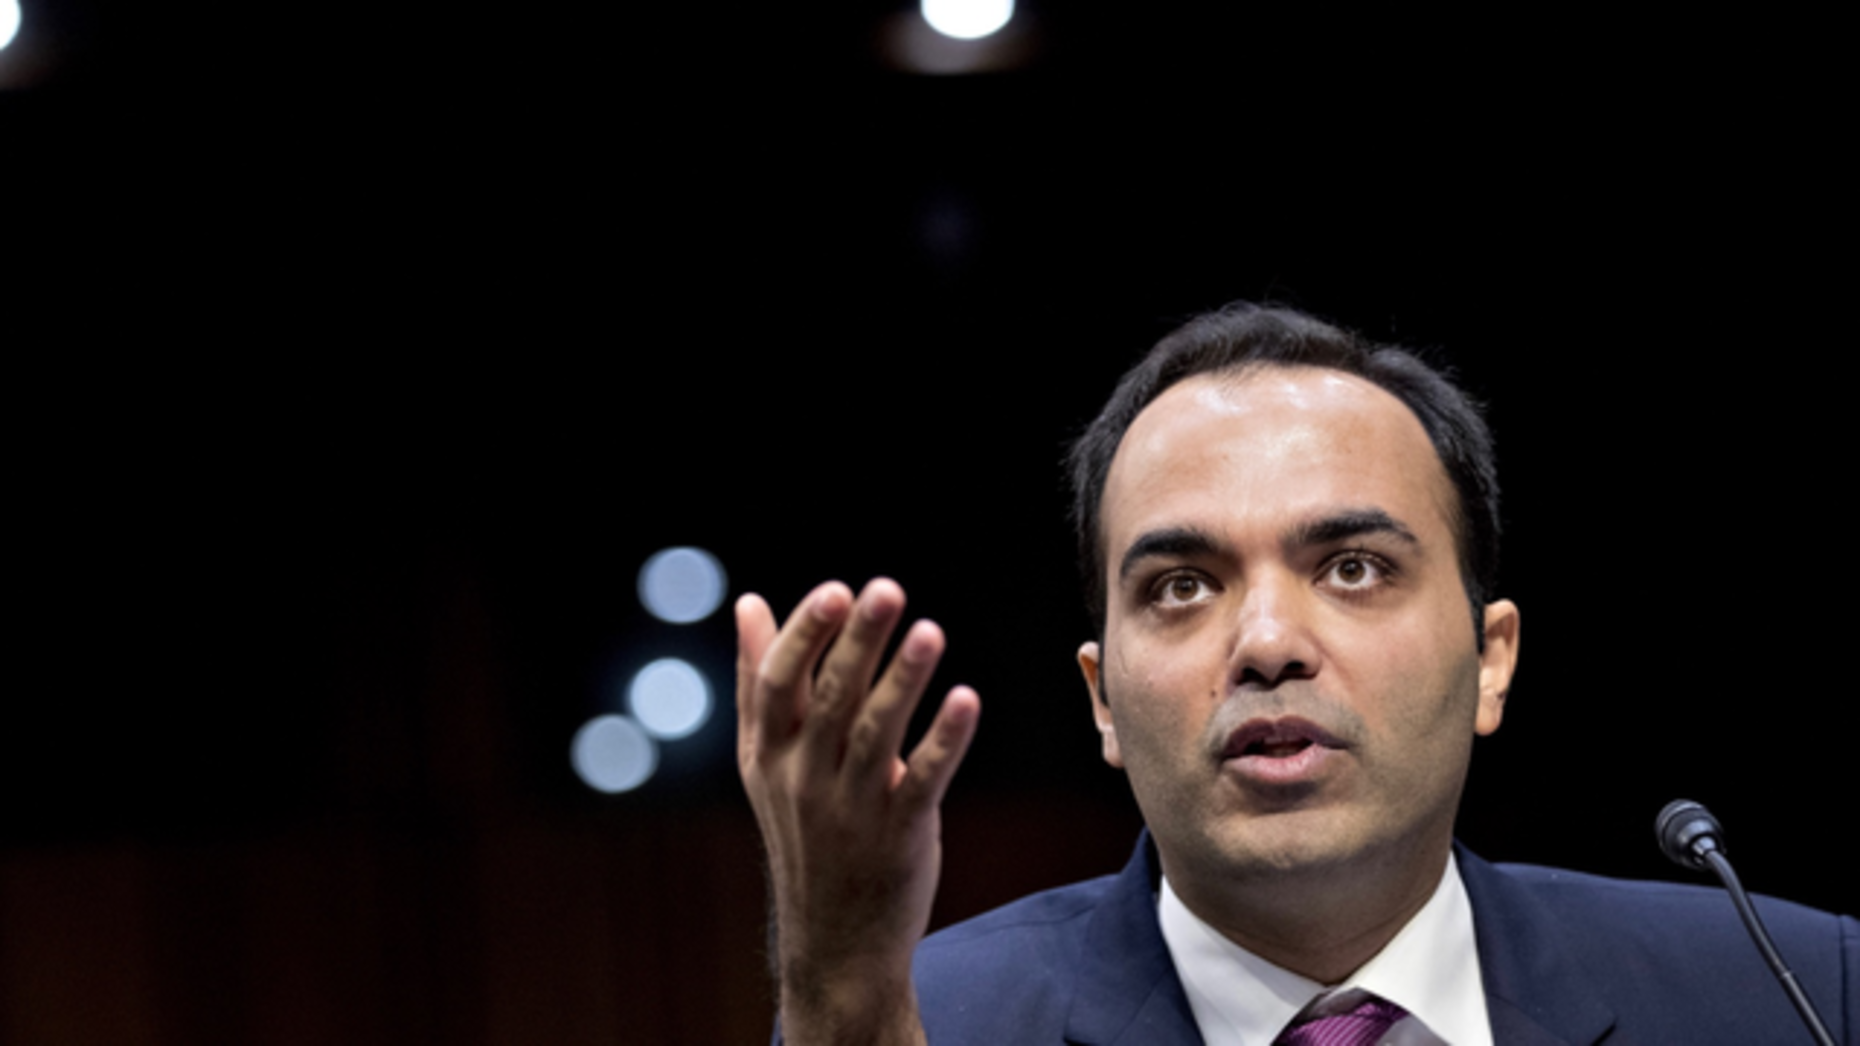 Rohit Chopra at his Senate confirmation hearing for the FTC role, in February 2018. Photo: Bloomberg